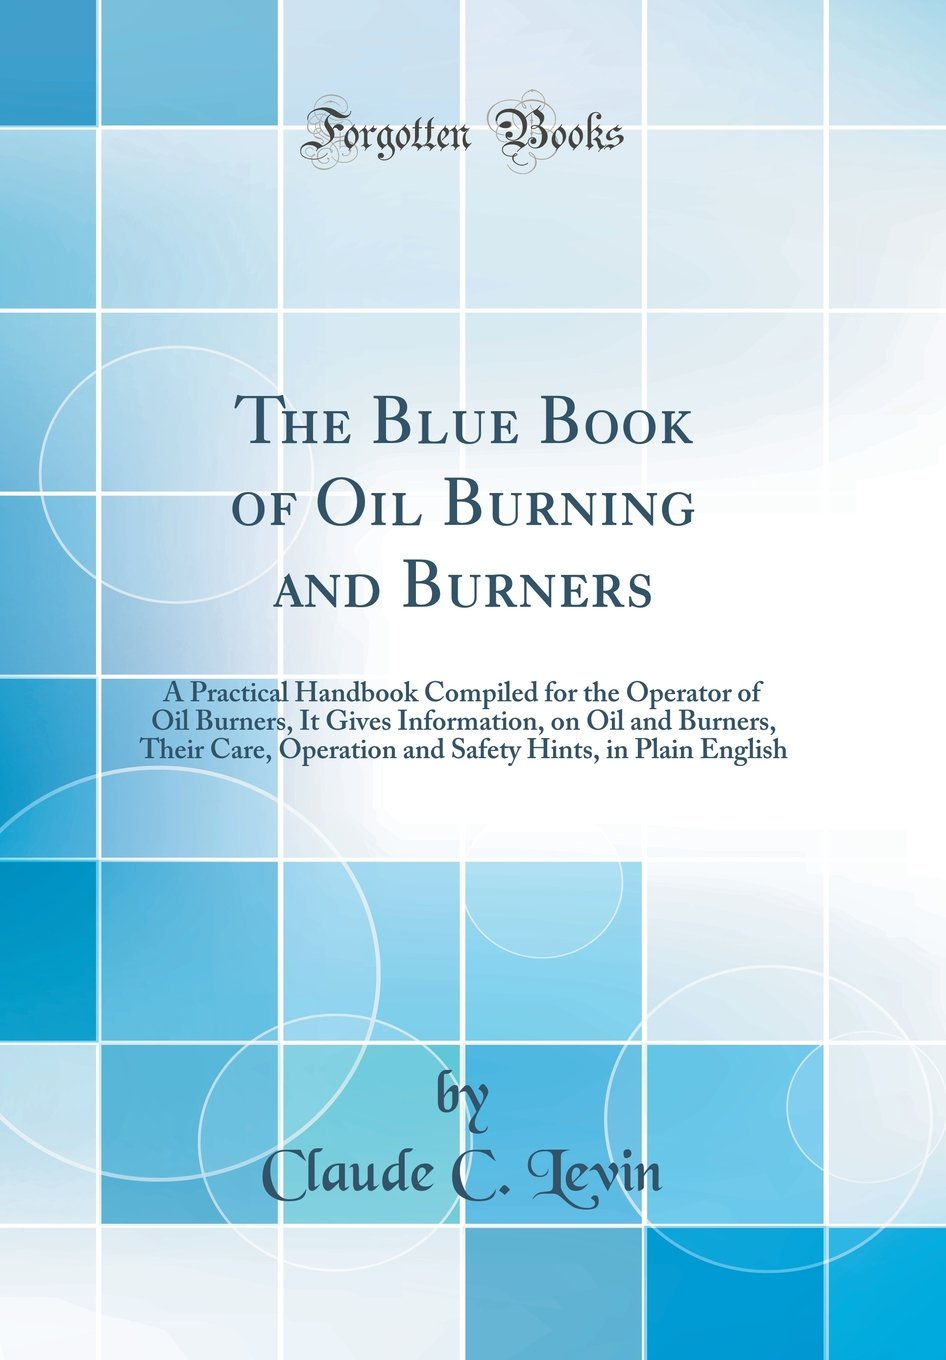 Download The Blue Book of Oil Burning and Burners: A Practical Handbook Compiled for the Operator of Oil Burners, It Gives Information, on Oil and Burners, ... Hints, in Plain English (Classic Reprint) pdf epub